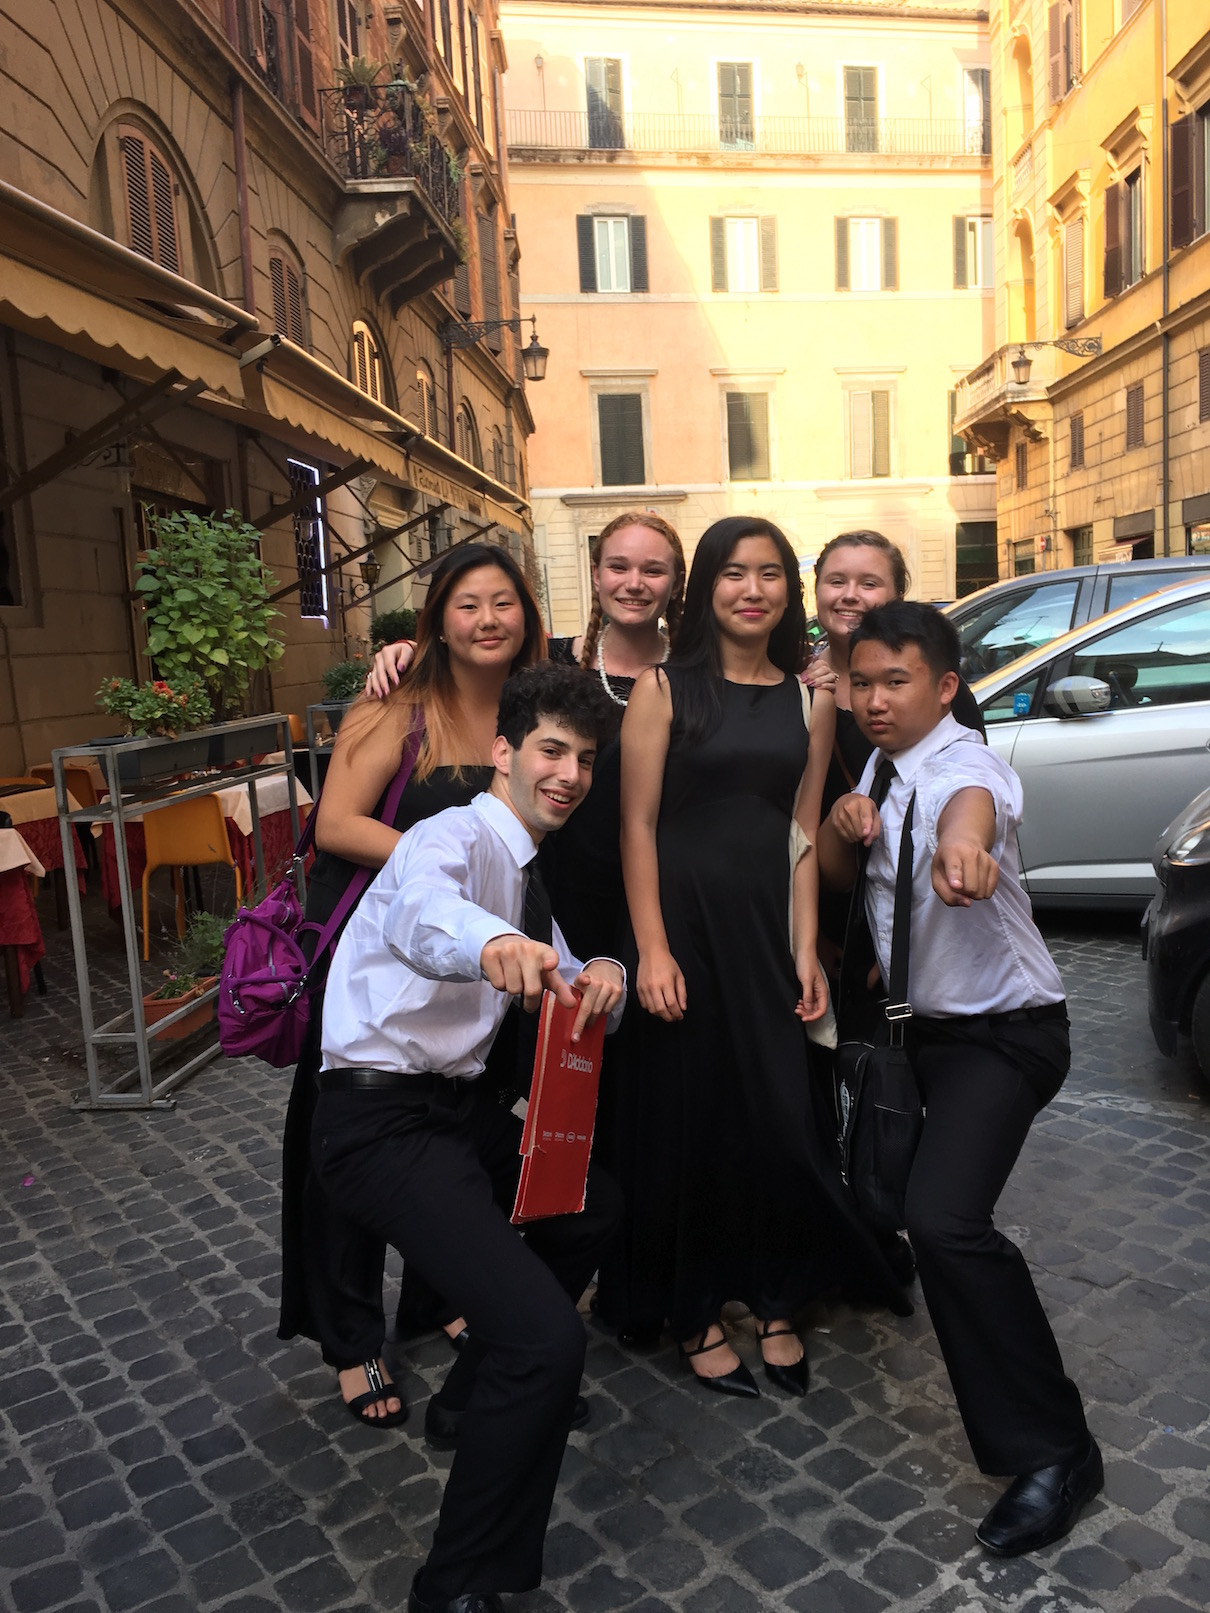 As the tour continued, the students bonded together closely. One of moments I won't forget was a day we all went to the beach and the entire orchestra was together frolicking in the small waves of the Mediterranean. I wish I had had a waterproof camera to record that!